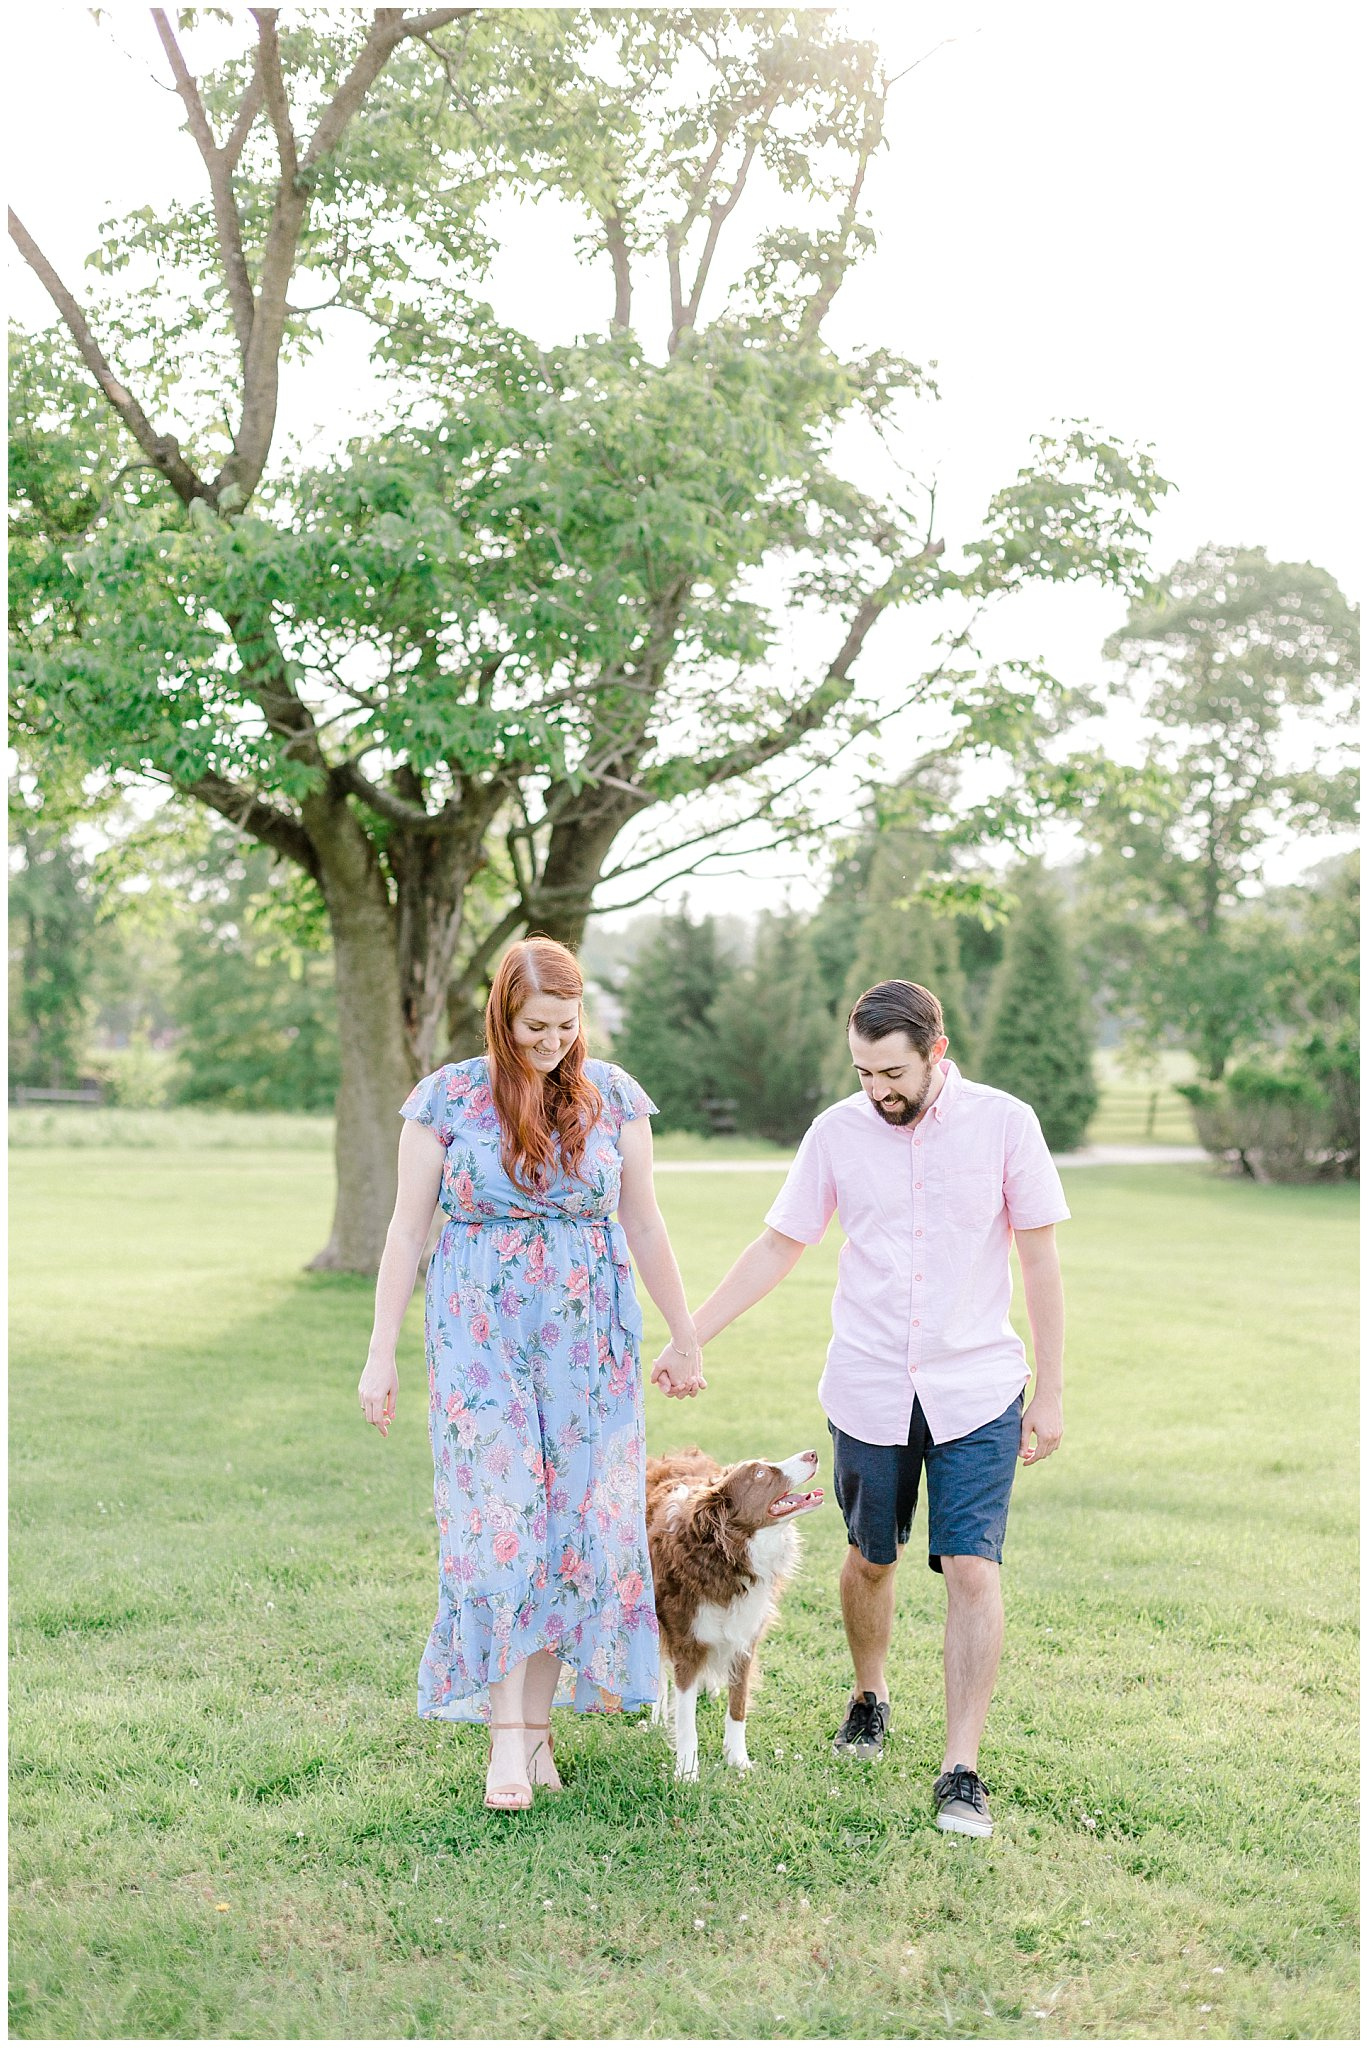 Manor house at prophecy Creek Blue Bell PA wedding venue summertime field engagement session lehigh valley based wedding and lifestyle photographe_0003.jpg